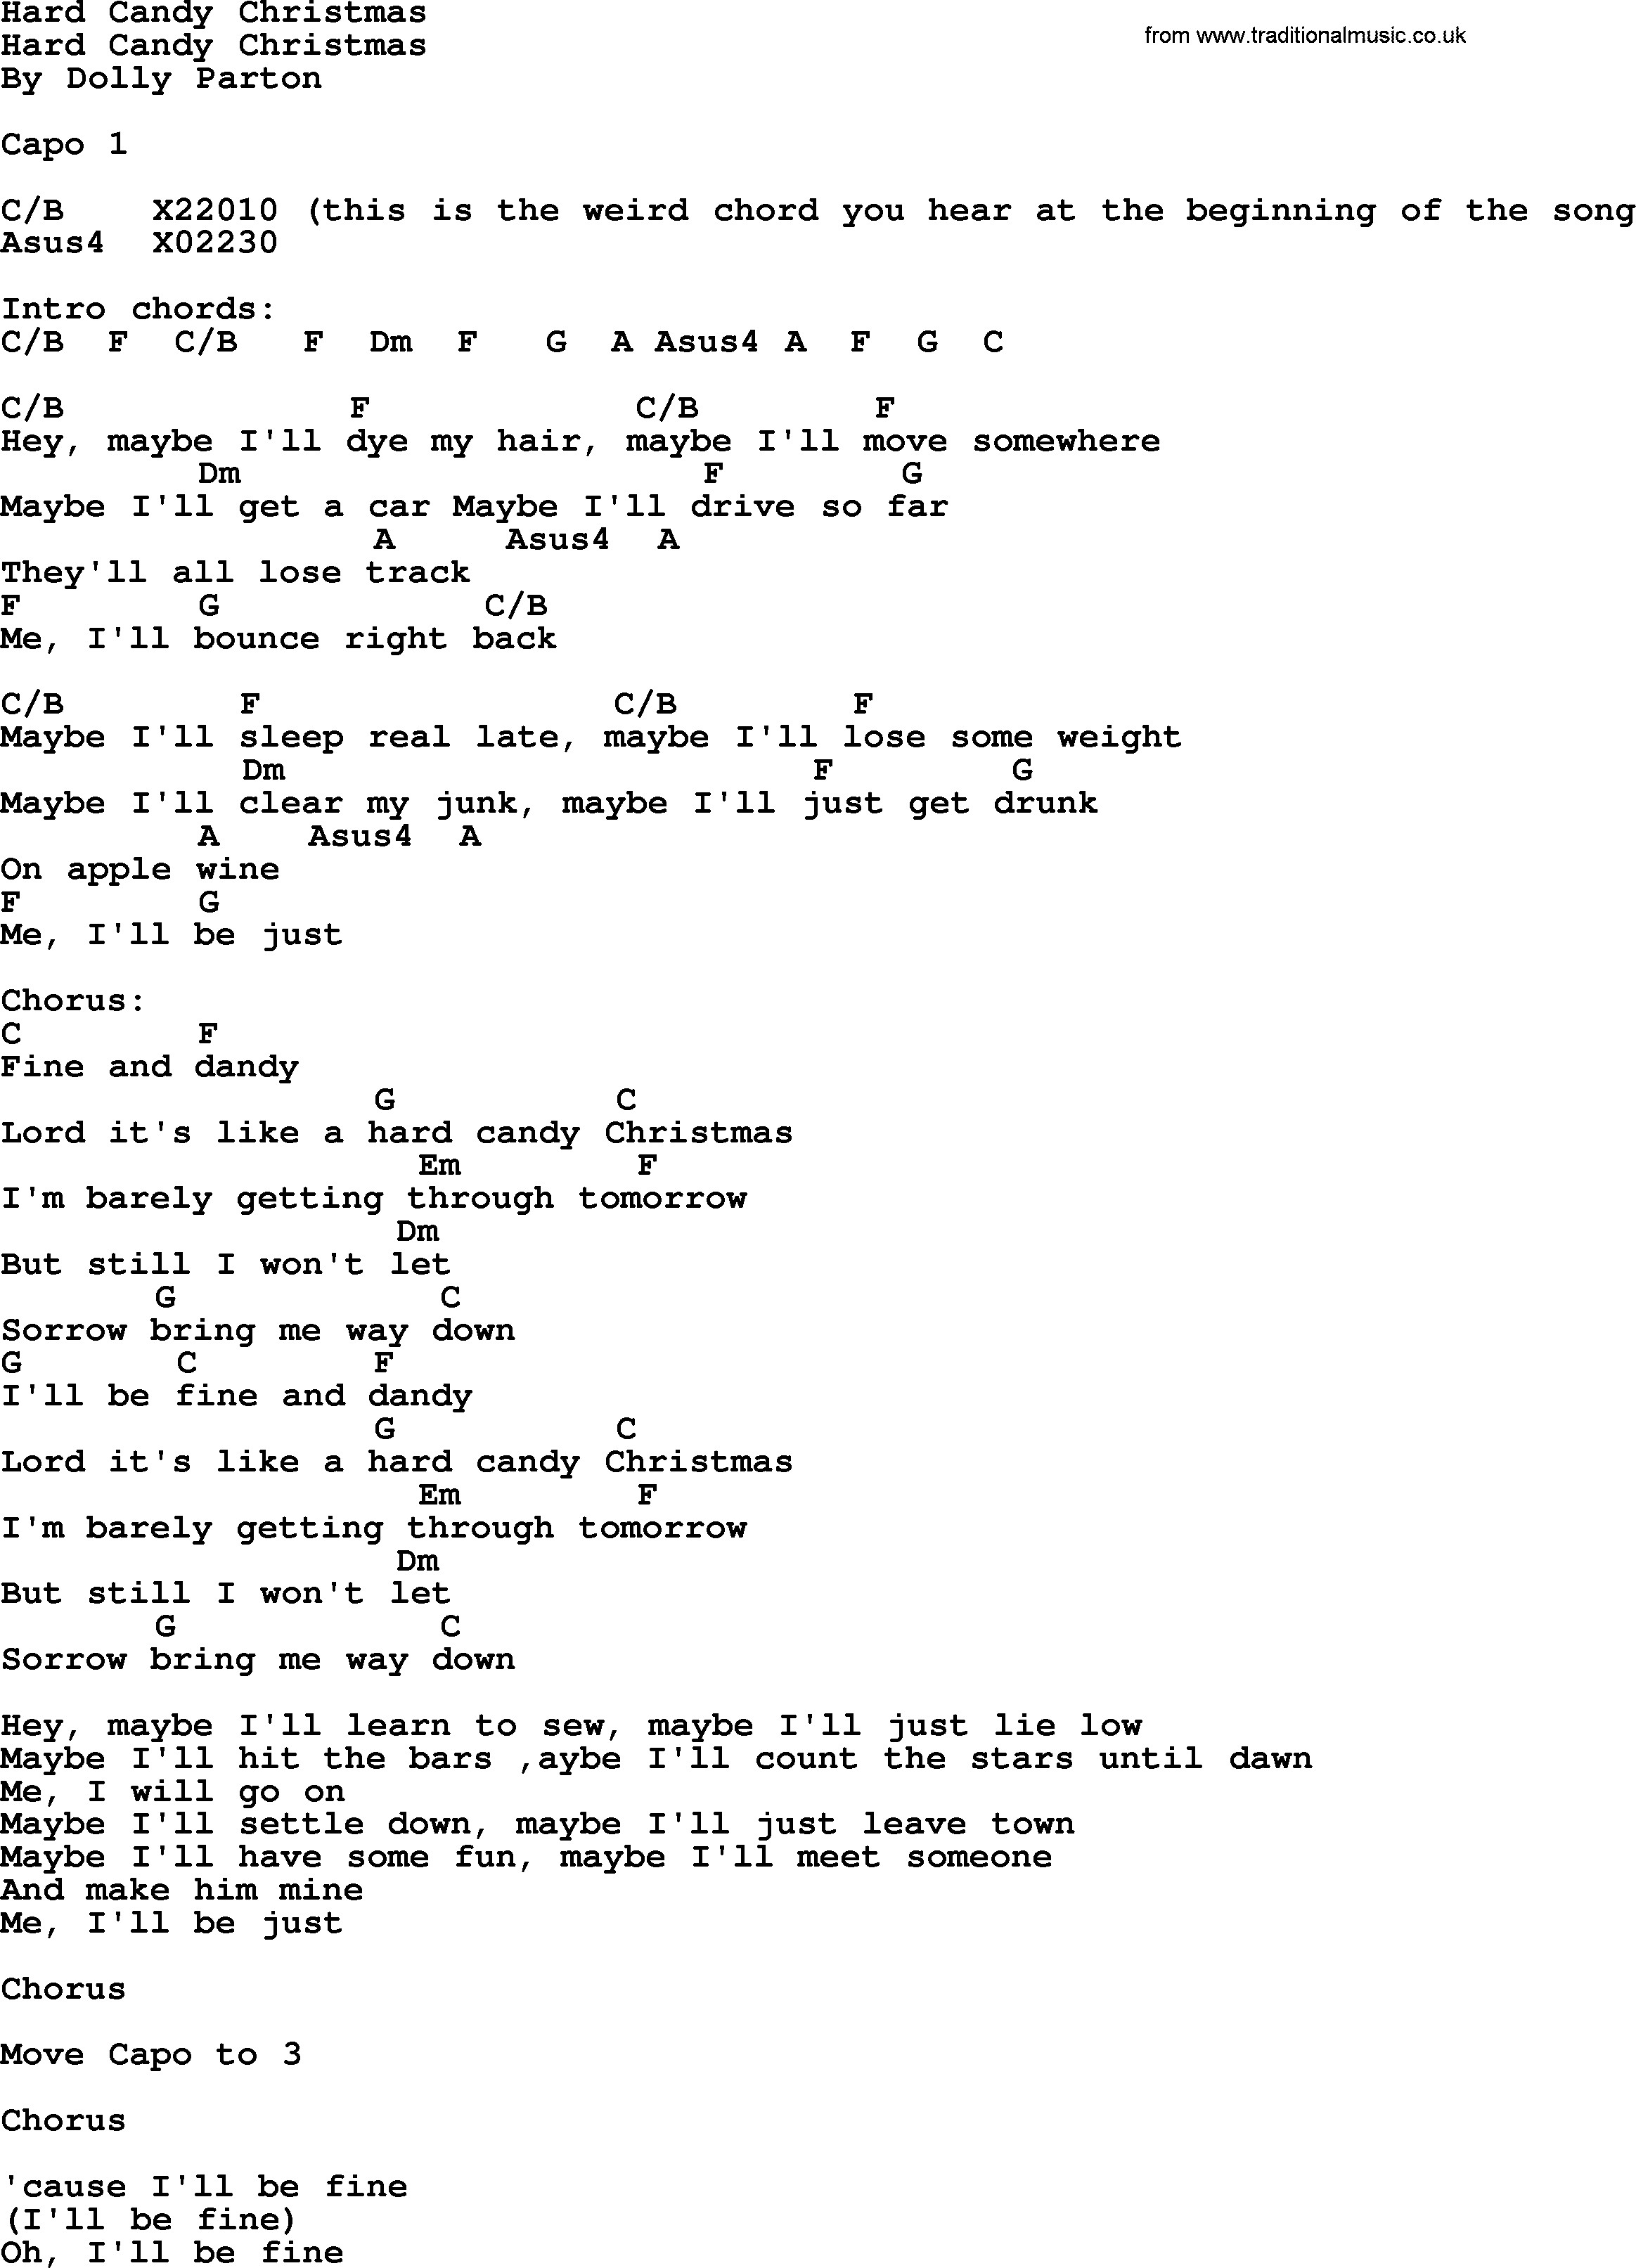 Hard Candy Christmas Song  Hard Candy Christmas Bluegrass lyrics with chords